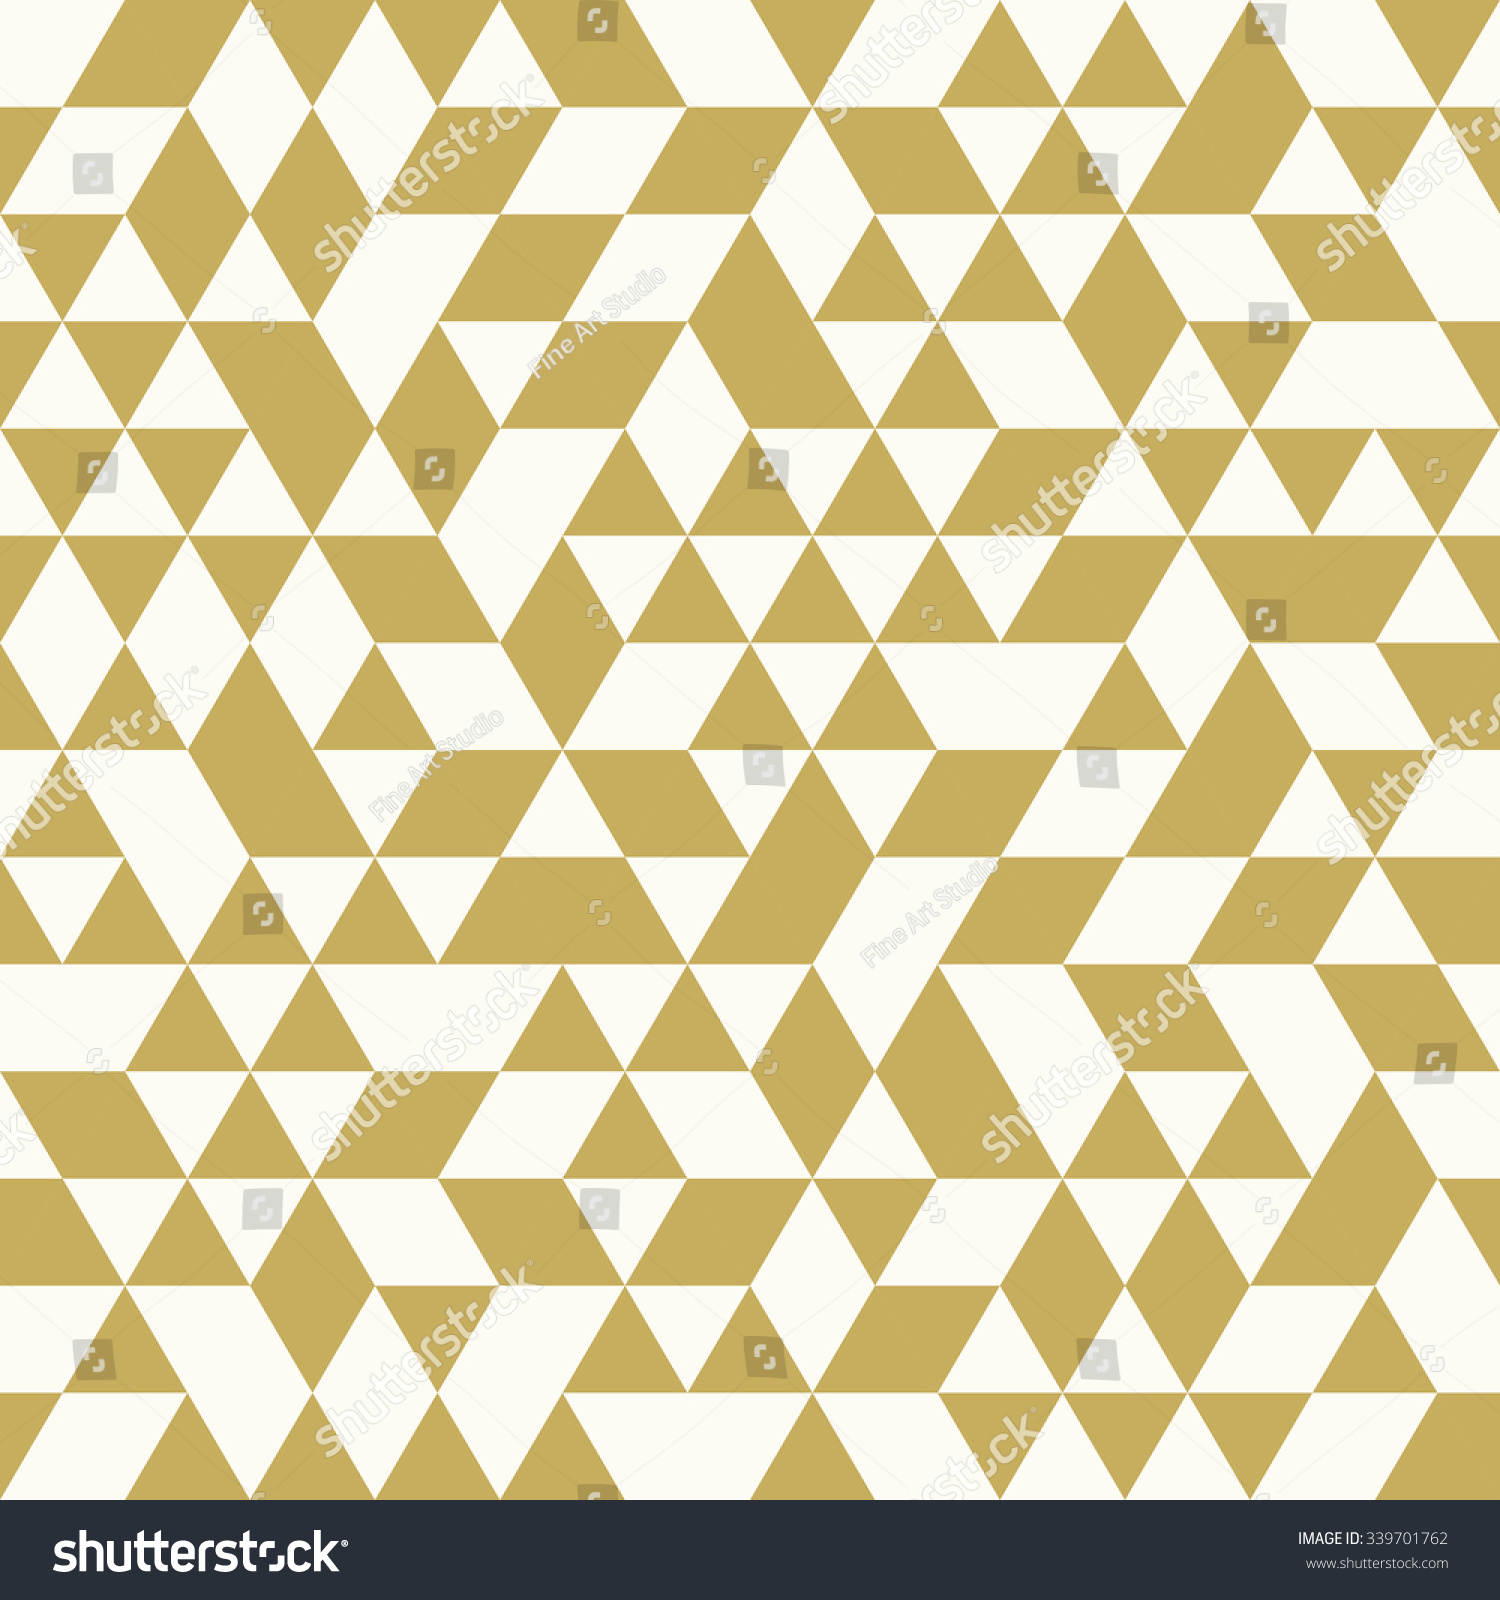 Geometric vector pattern white golden triangles stock for Object pool design pattern